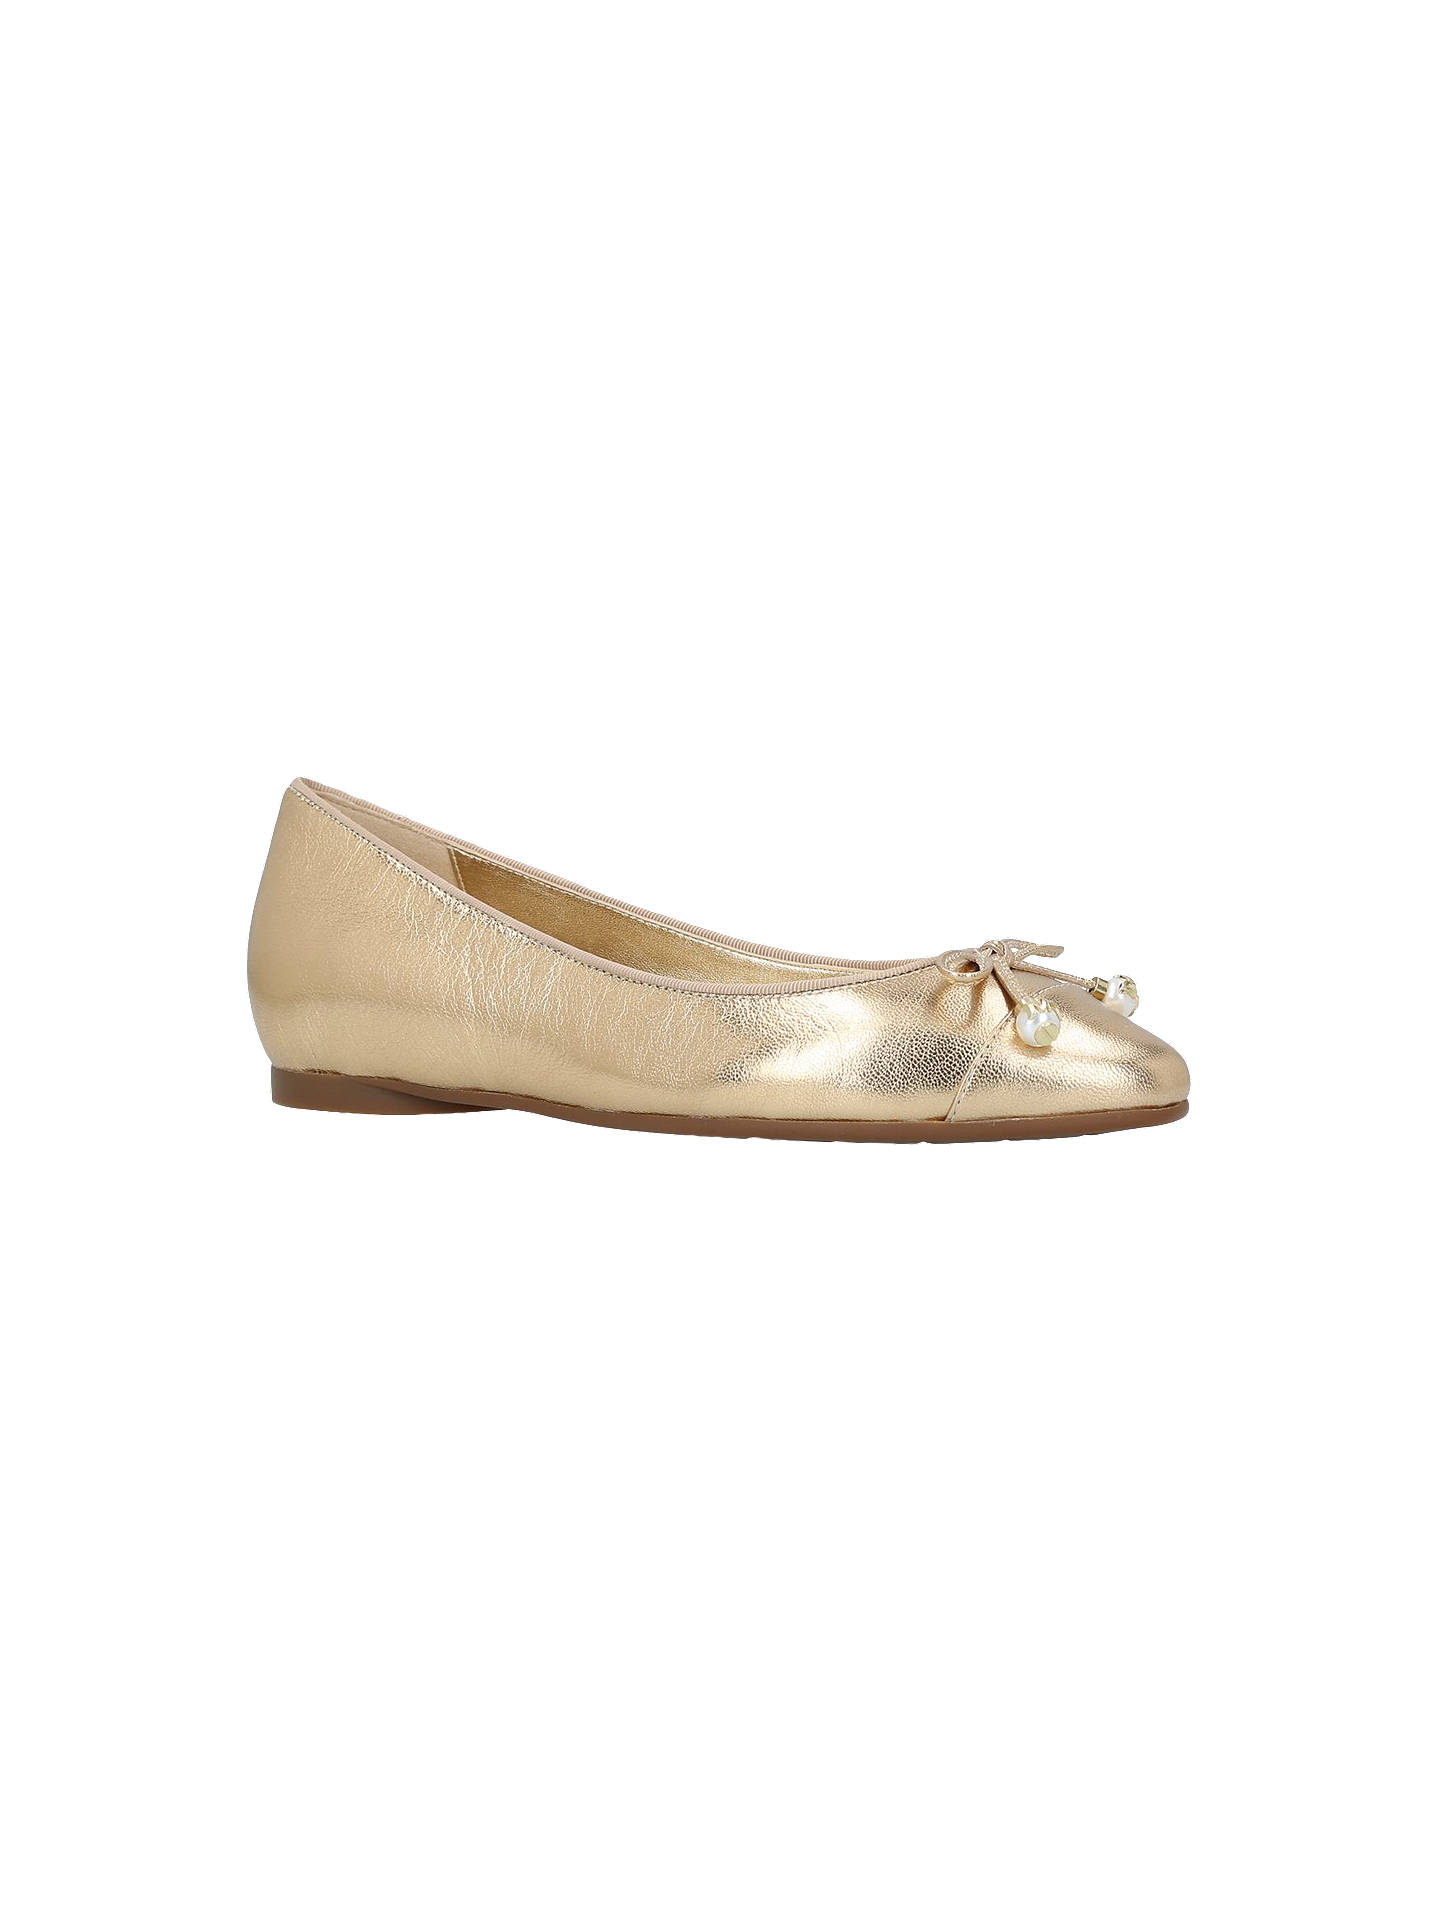 b41912e827a4 Buy MICHAEL Michael Kors Gia Pumps